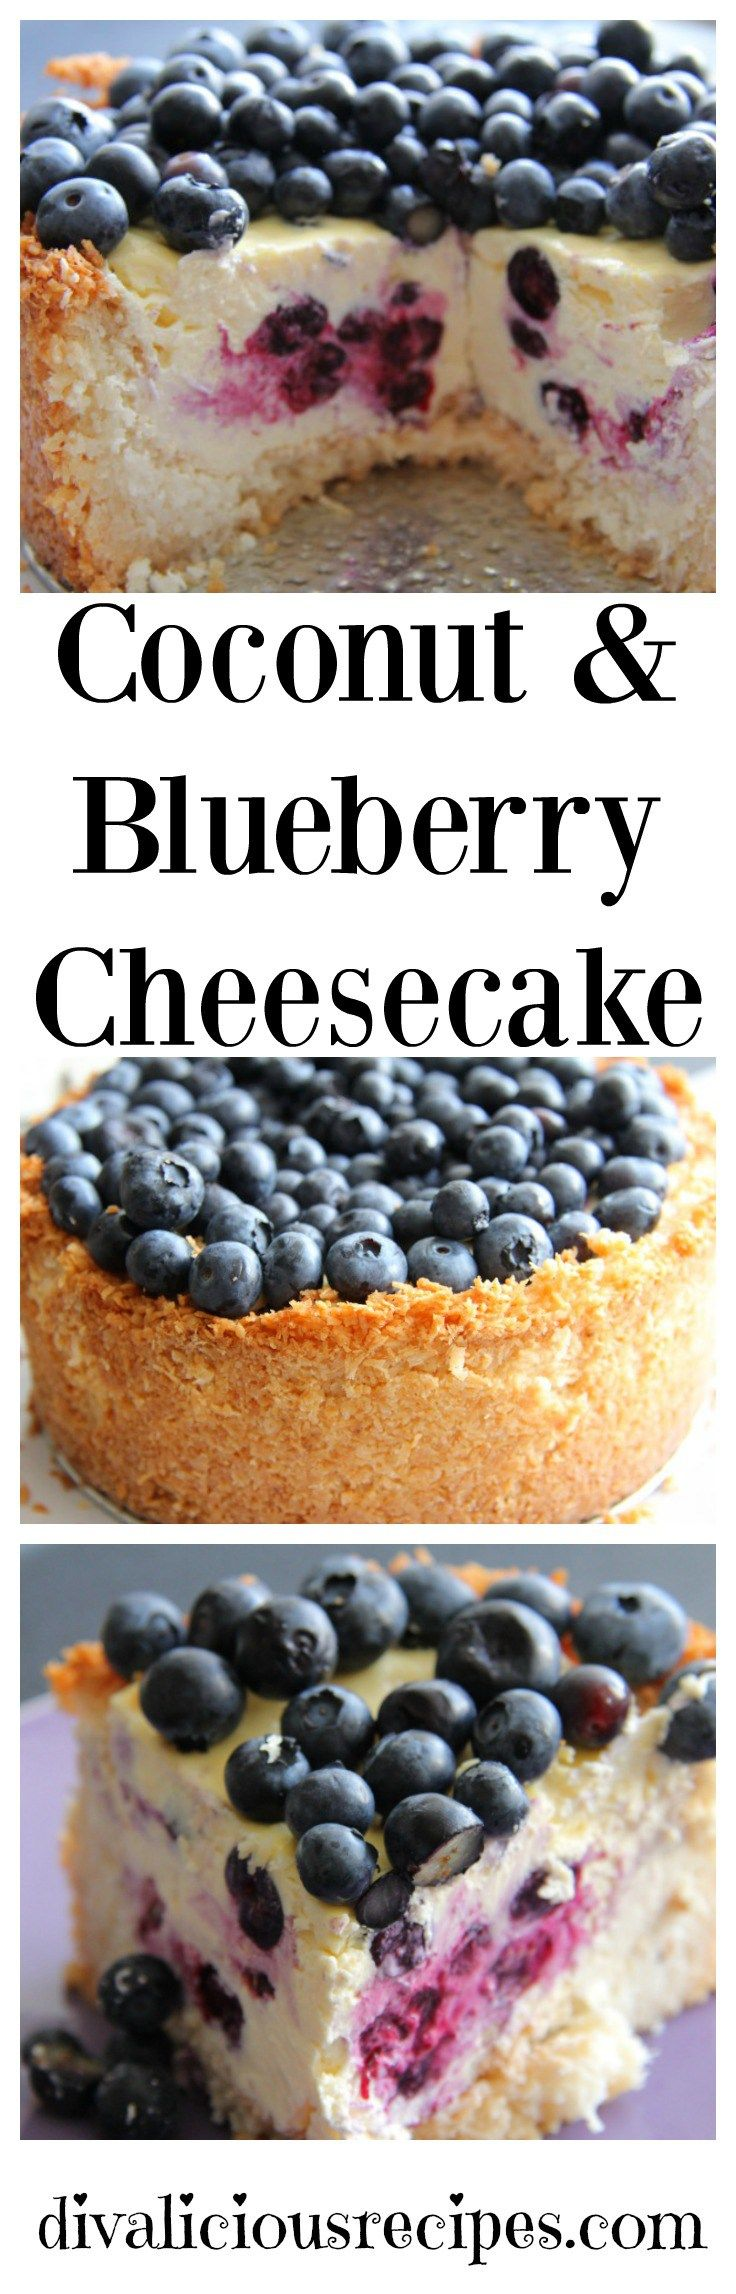 This coconut and blueberry cheesecake has a crust that is made with coconut instead of a low carb flour or biscuit. It looks too good to eat!